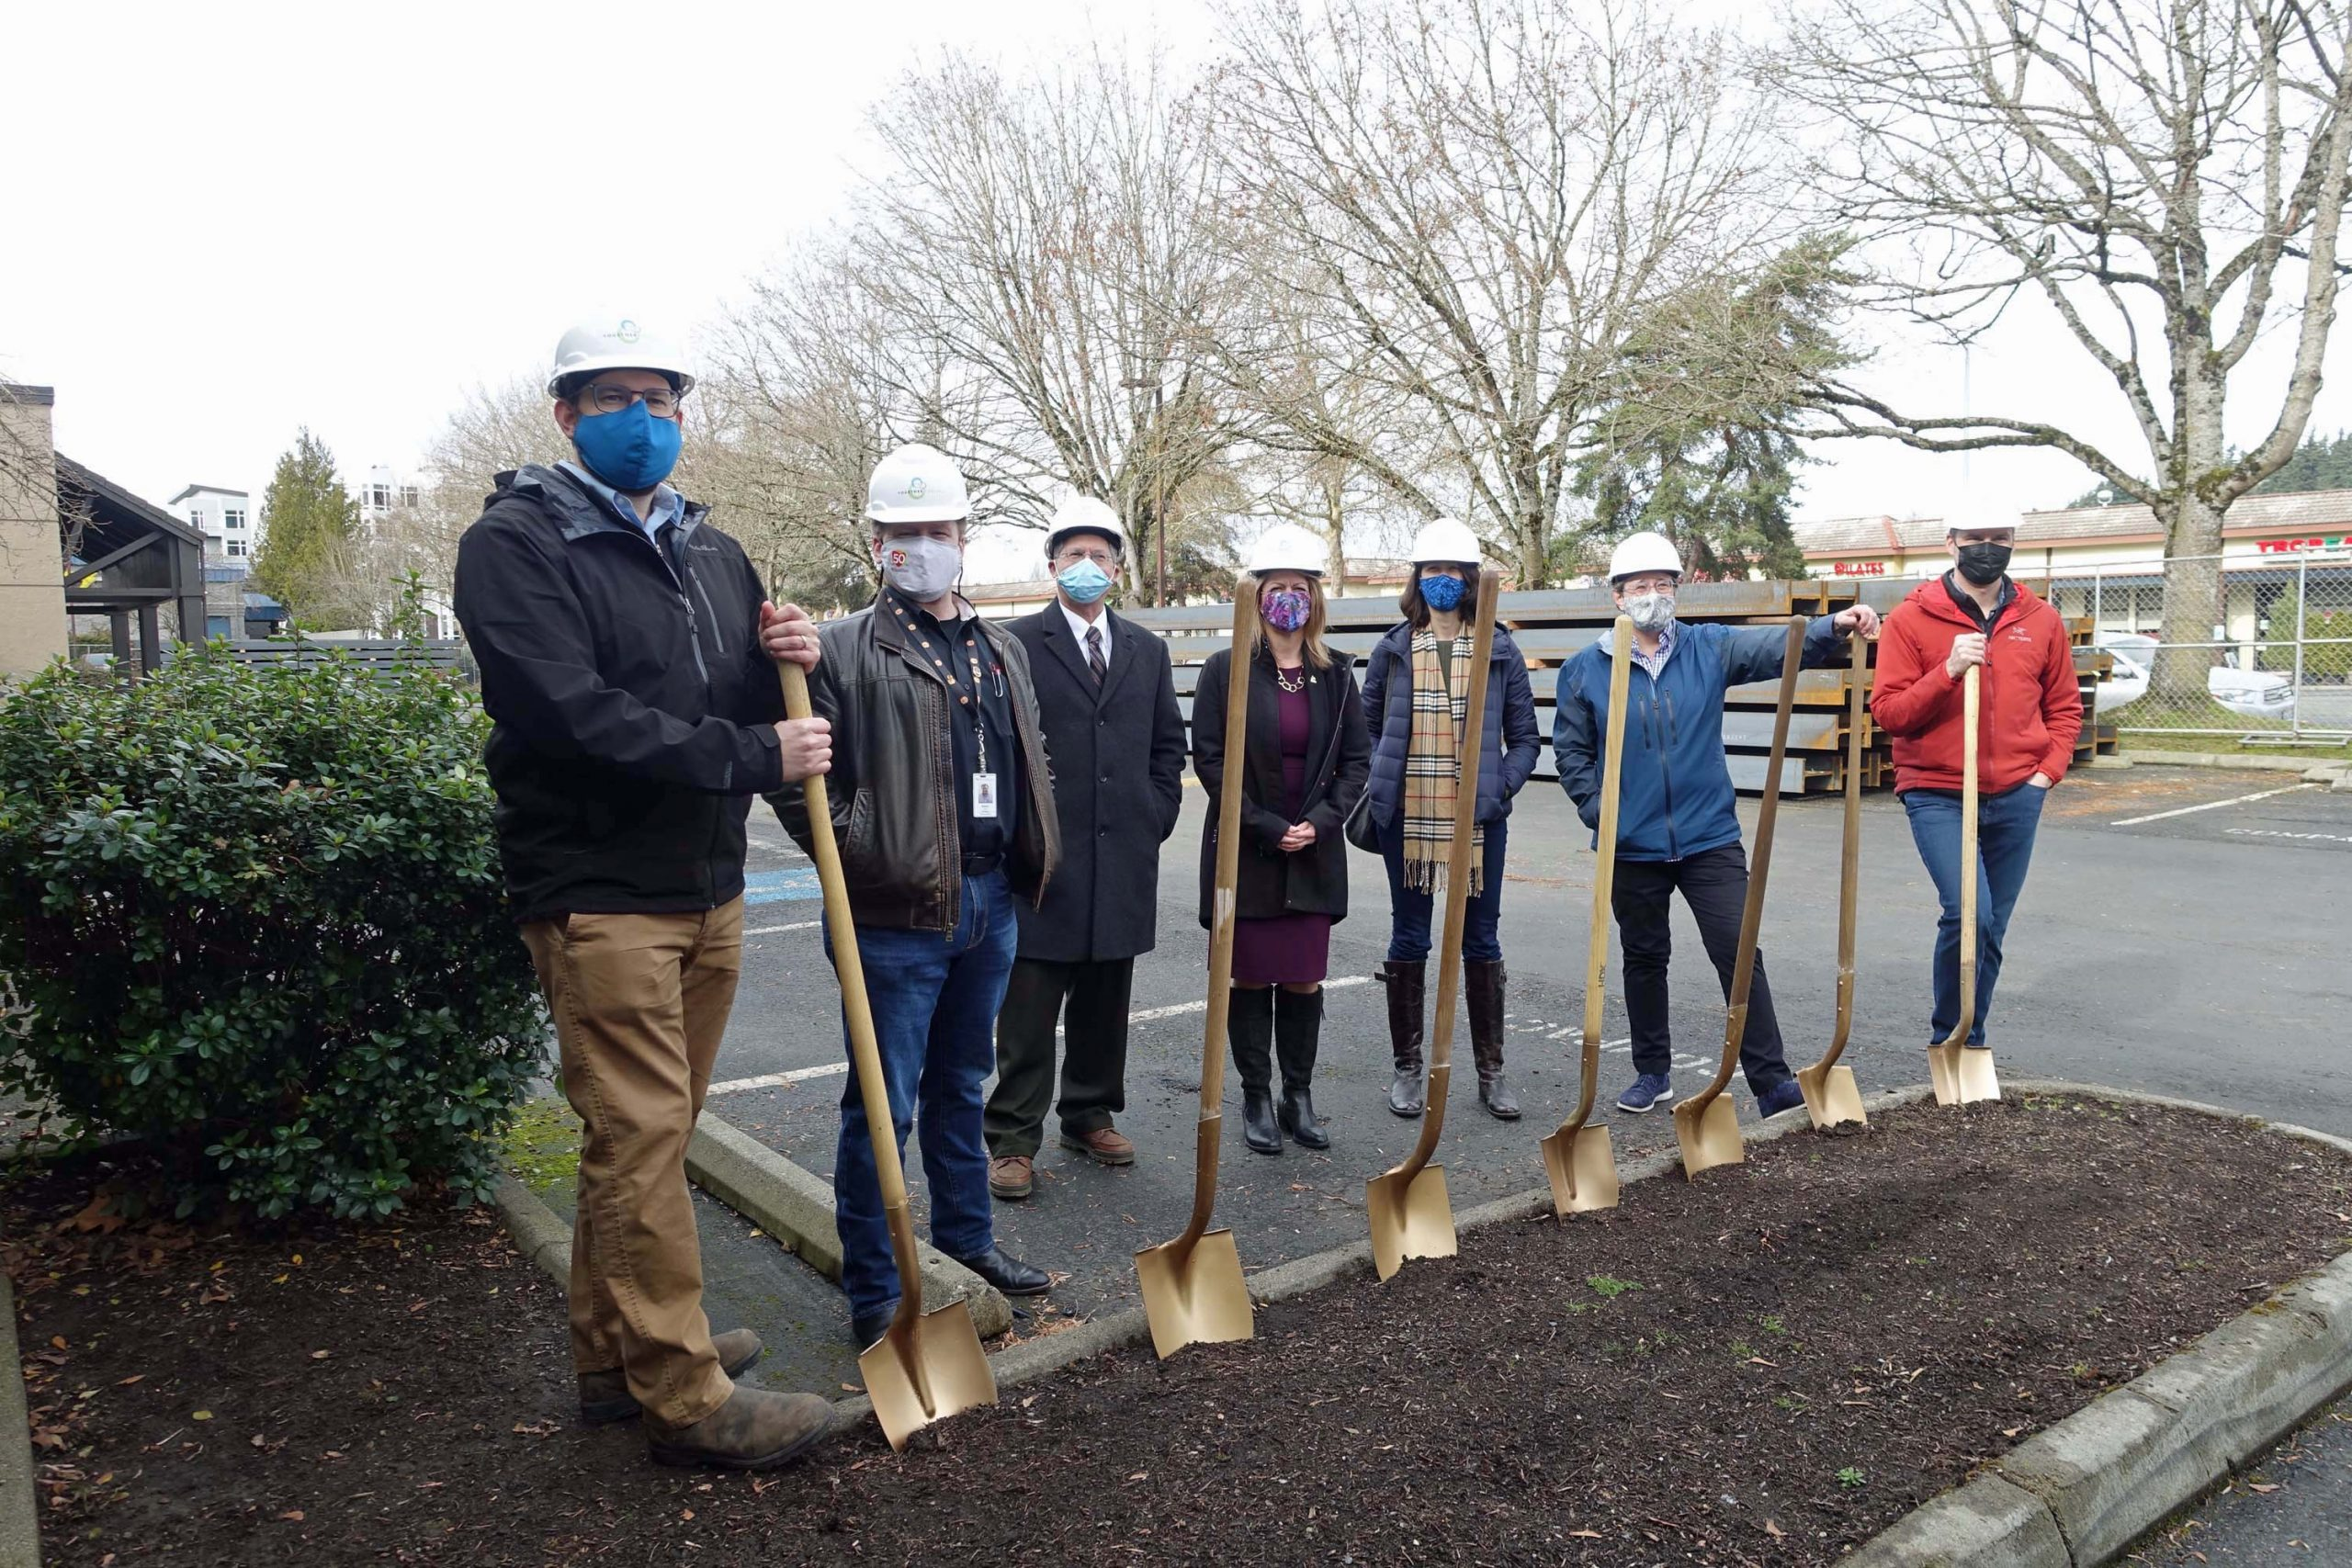 Outside photo of seven adult individuals all holding golden shovels, breaking ground at Together Center, February 2021.